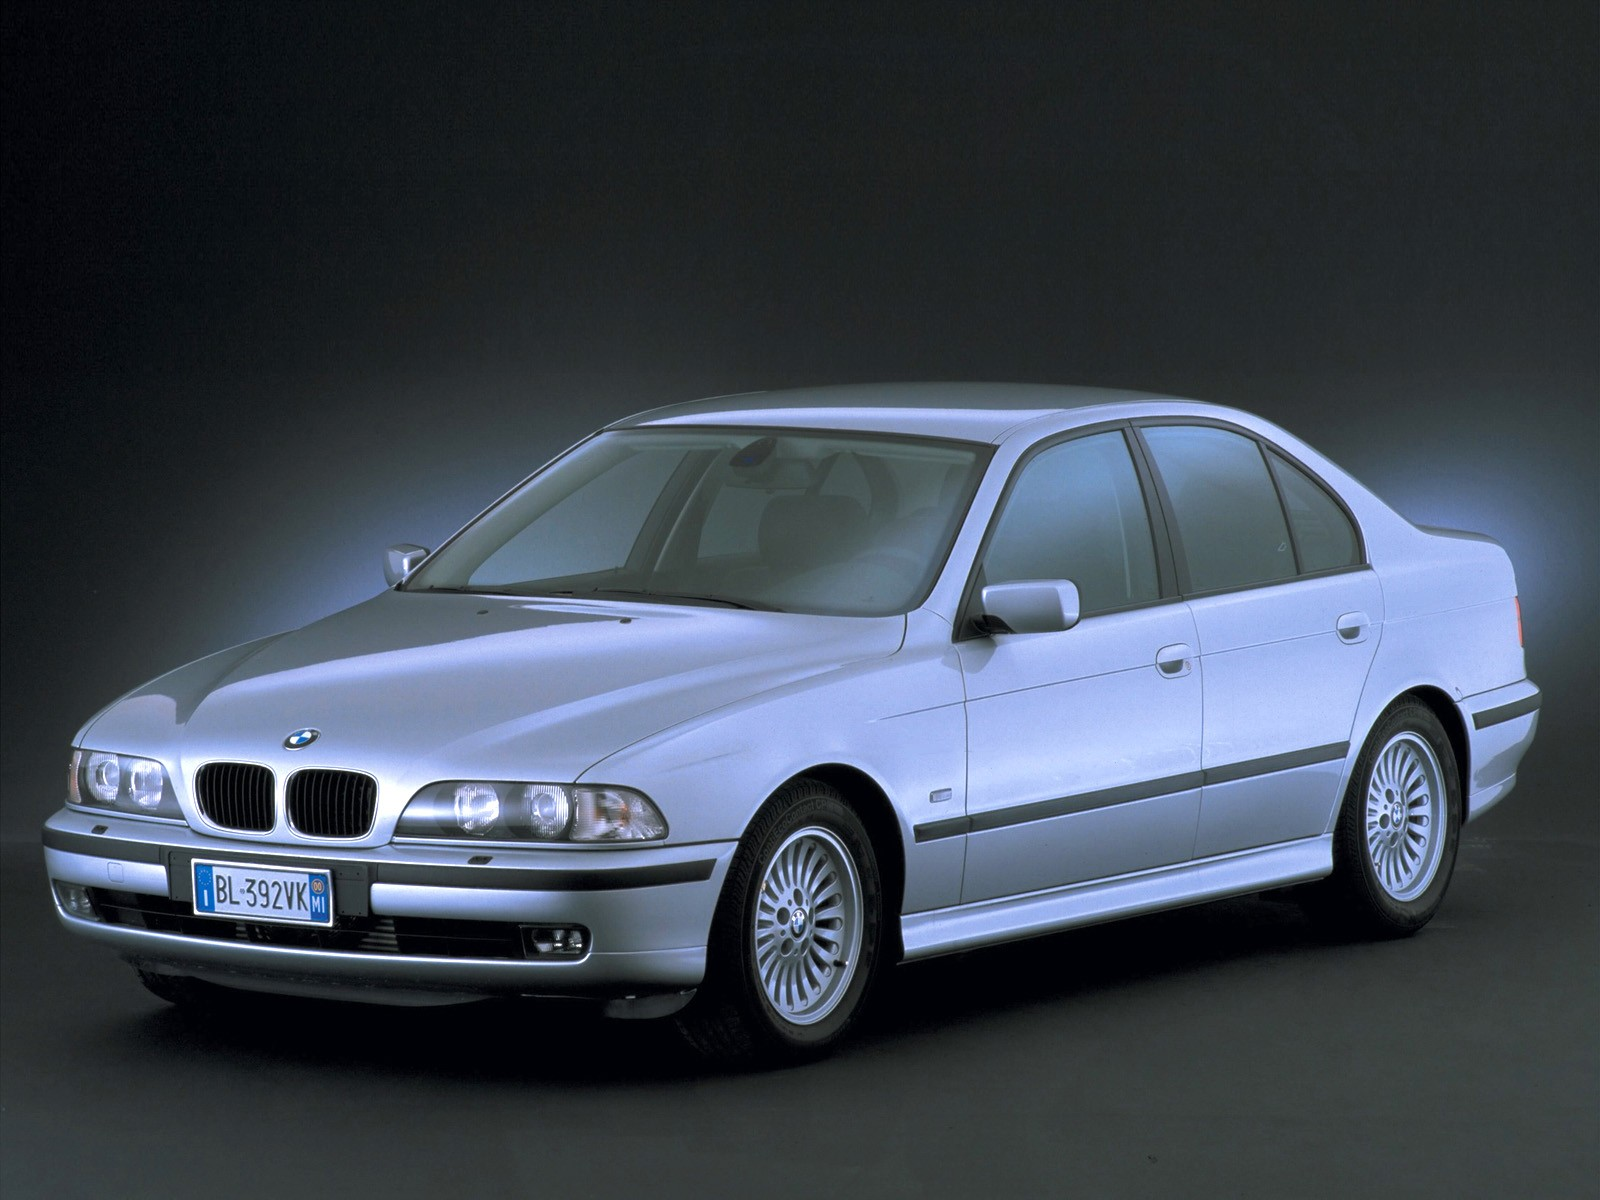 Bmw 5 Series Iv E39 Restyling 2000 2004 Station Wagon 5 Door Outstanding Cars